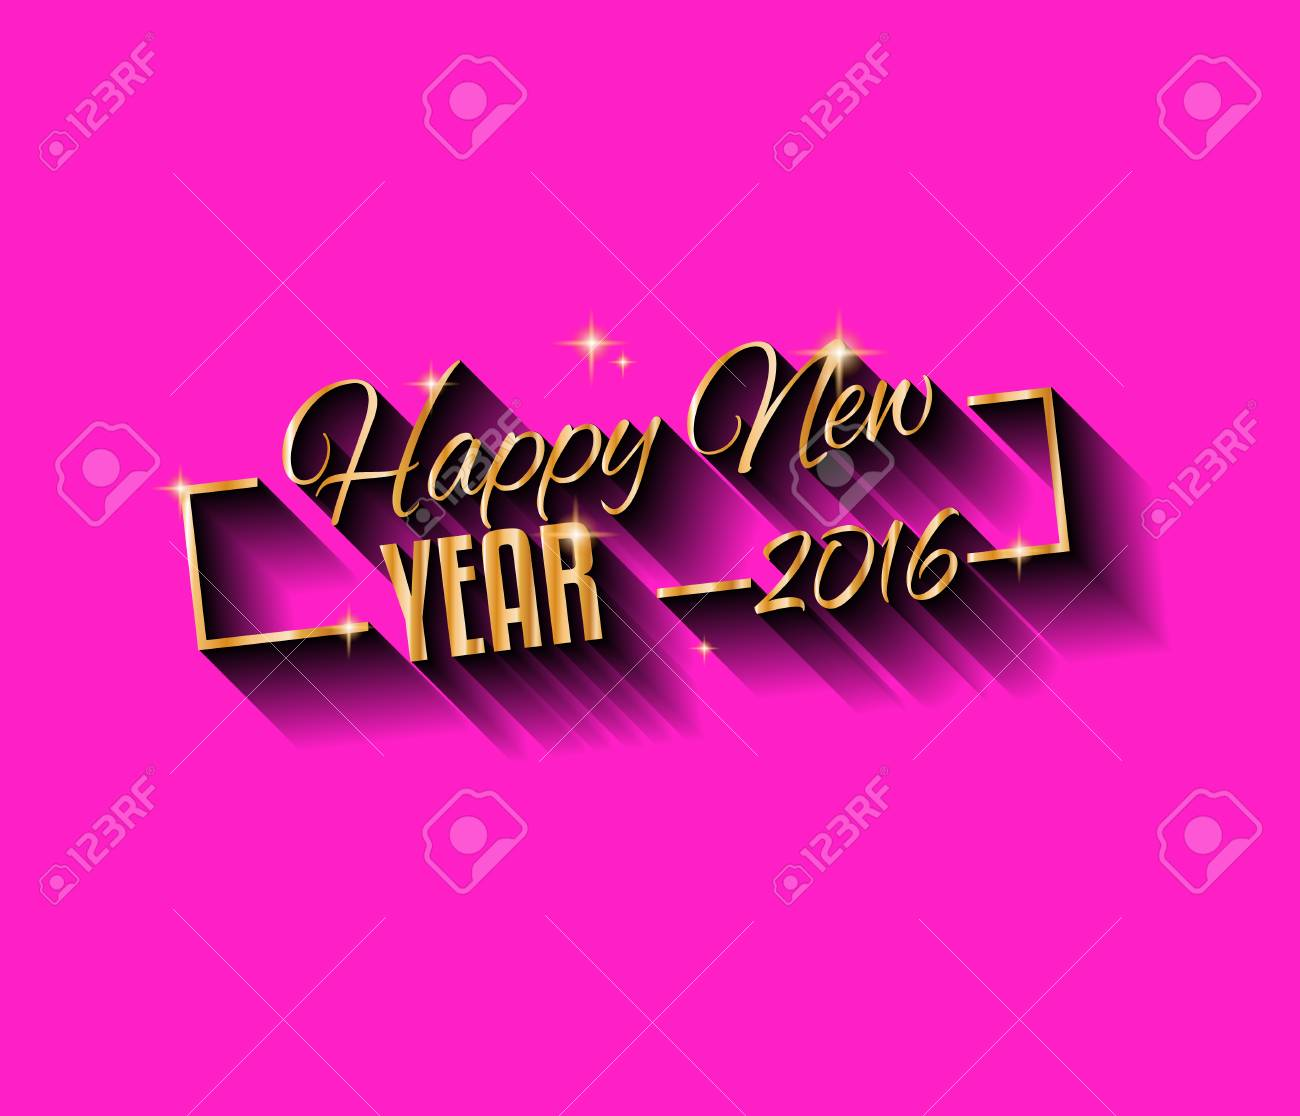 2016 happy new year and merry christmas background for seasonal 2016 happy new year and merry christmas background for seasonal greetings cards parties flyer m4hsunfo